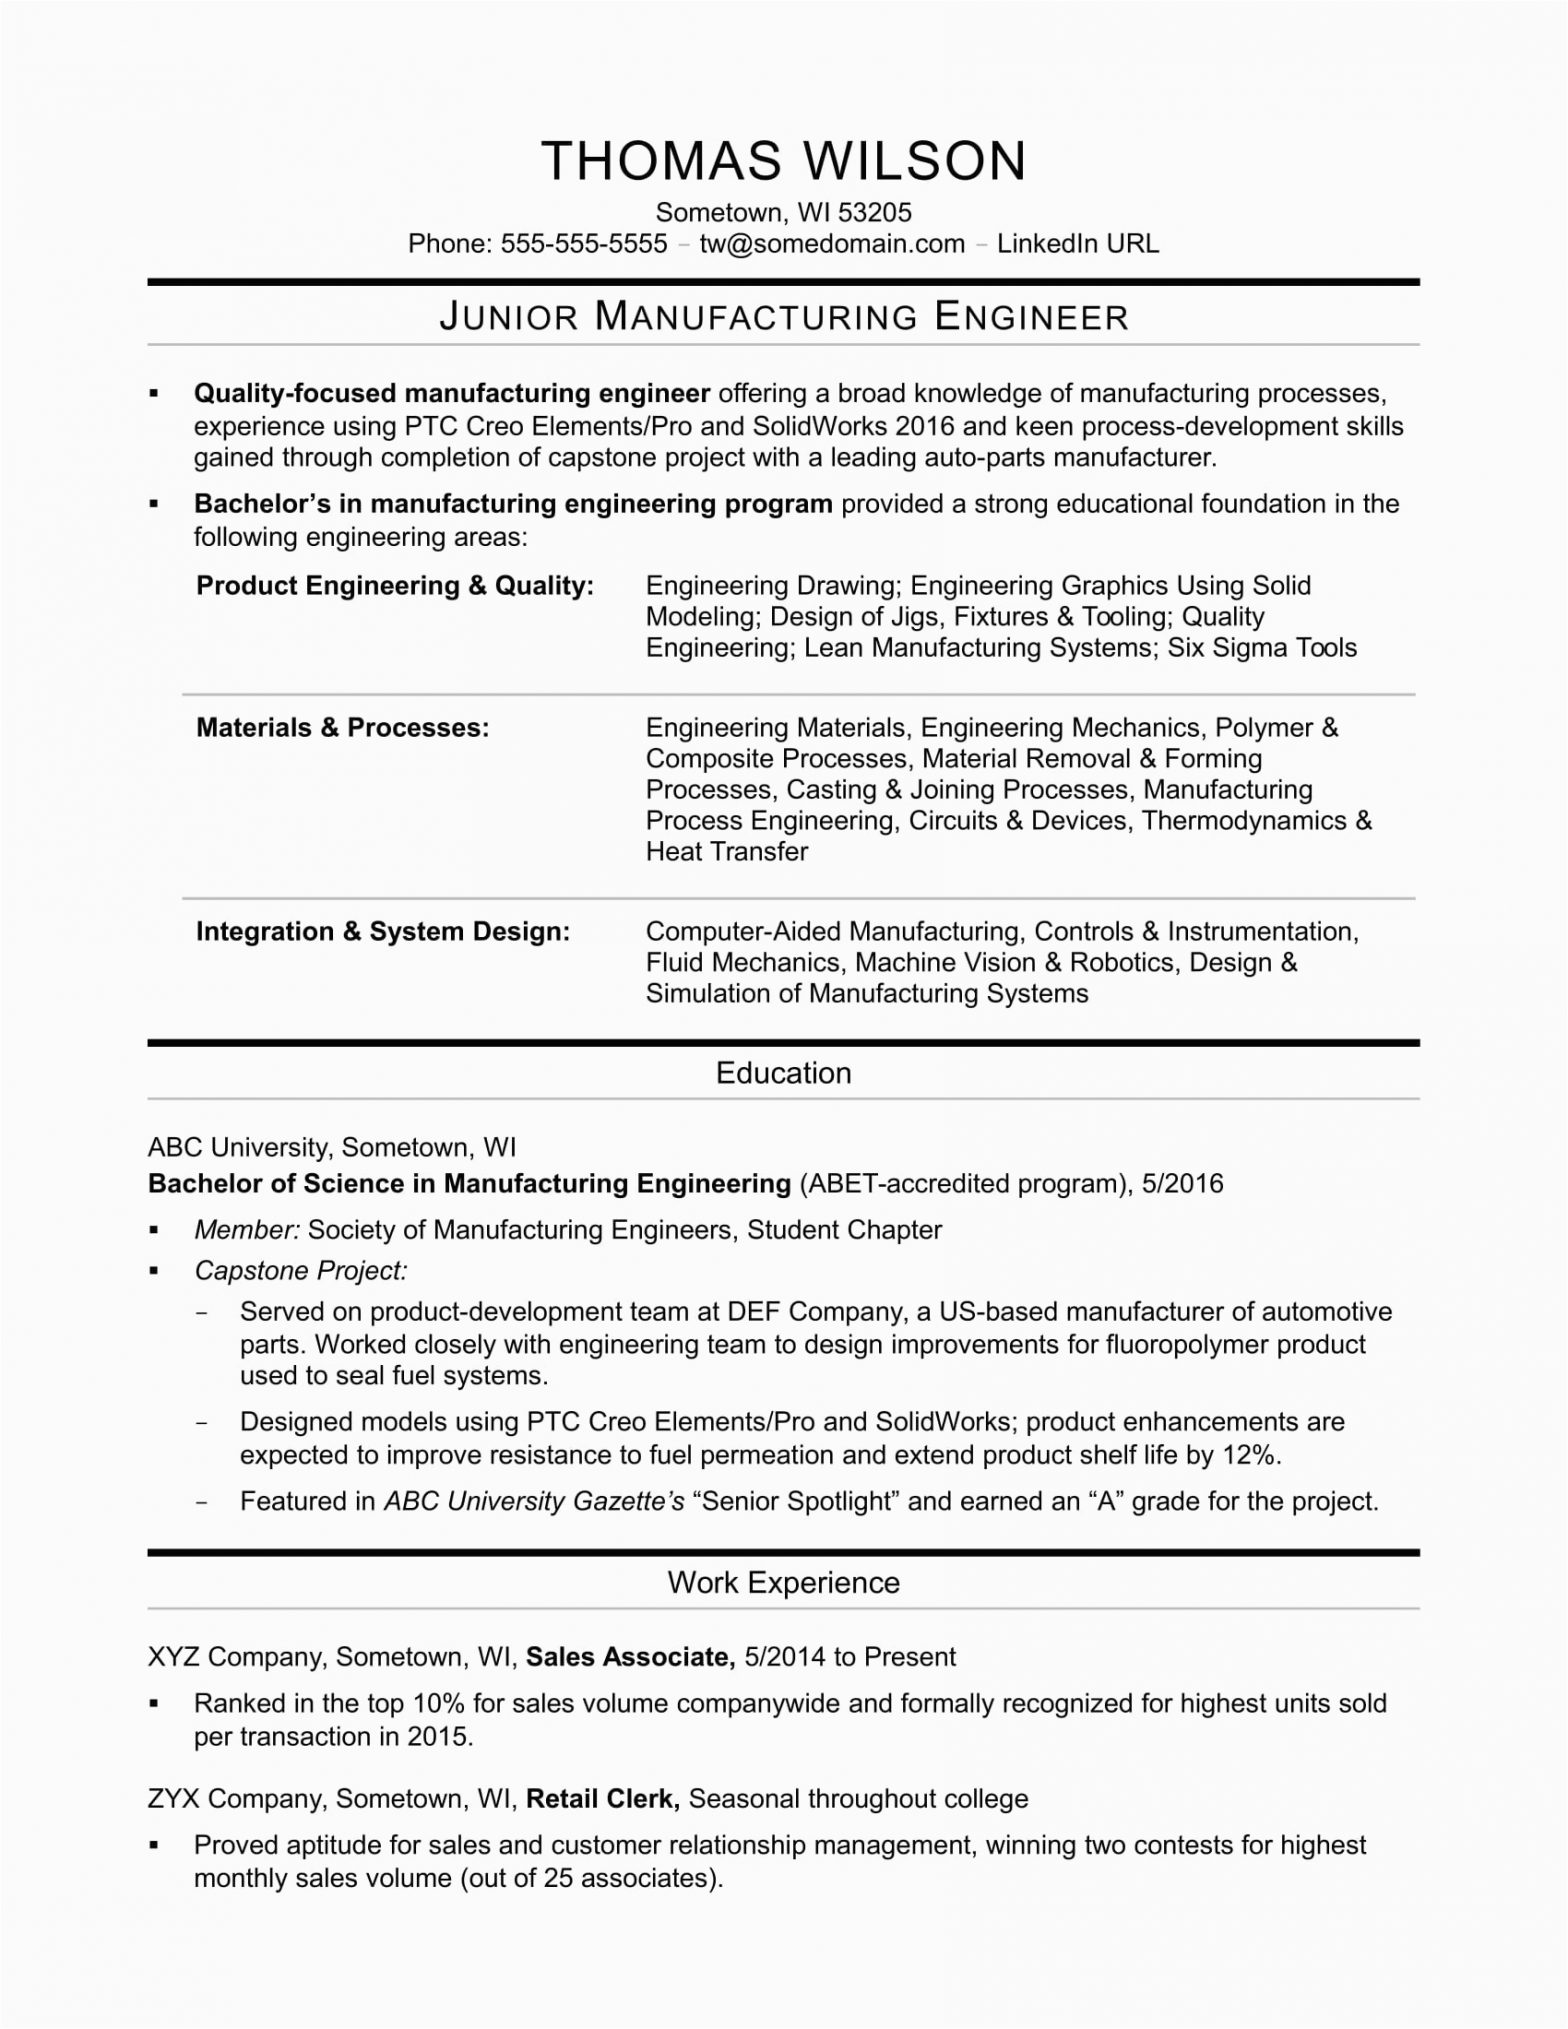 Sample Resume for Mechanical Production Engineer Manufacturing Engineer Resume